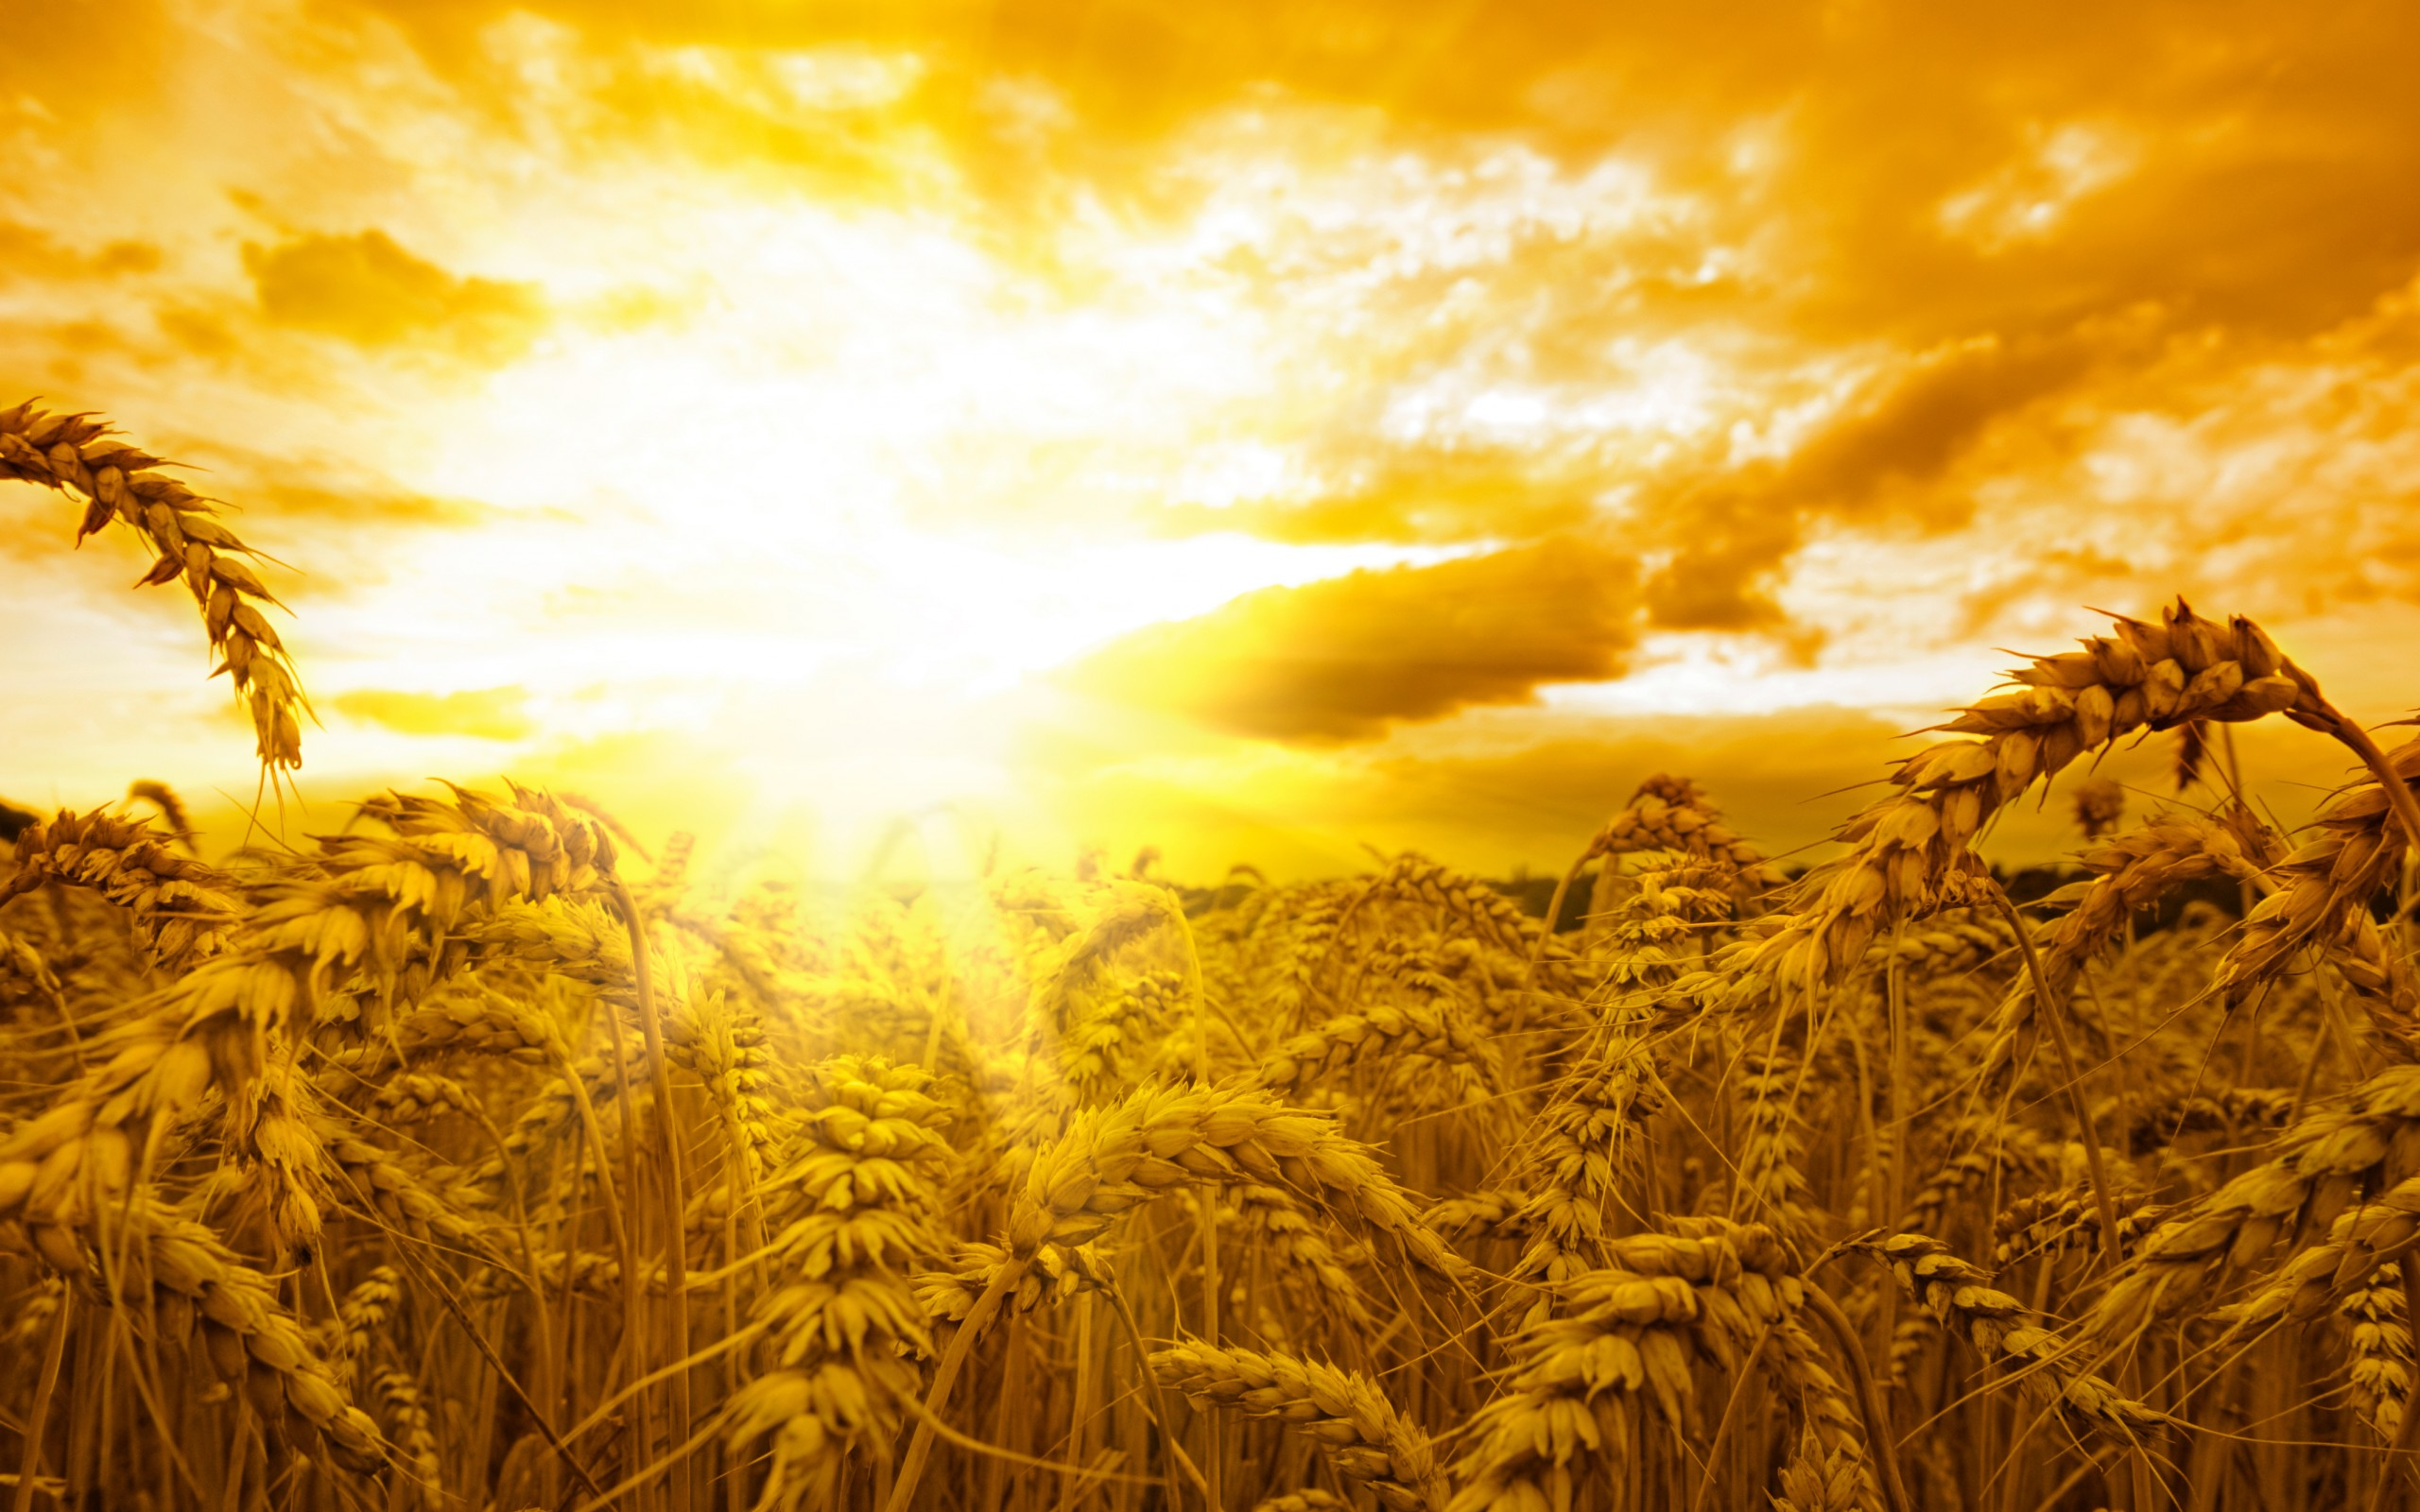 208 Wheat Wallpapers | Wheat Backgrounds Page 2